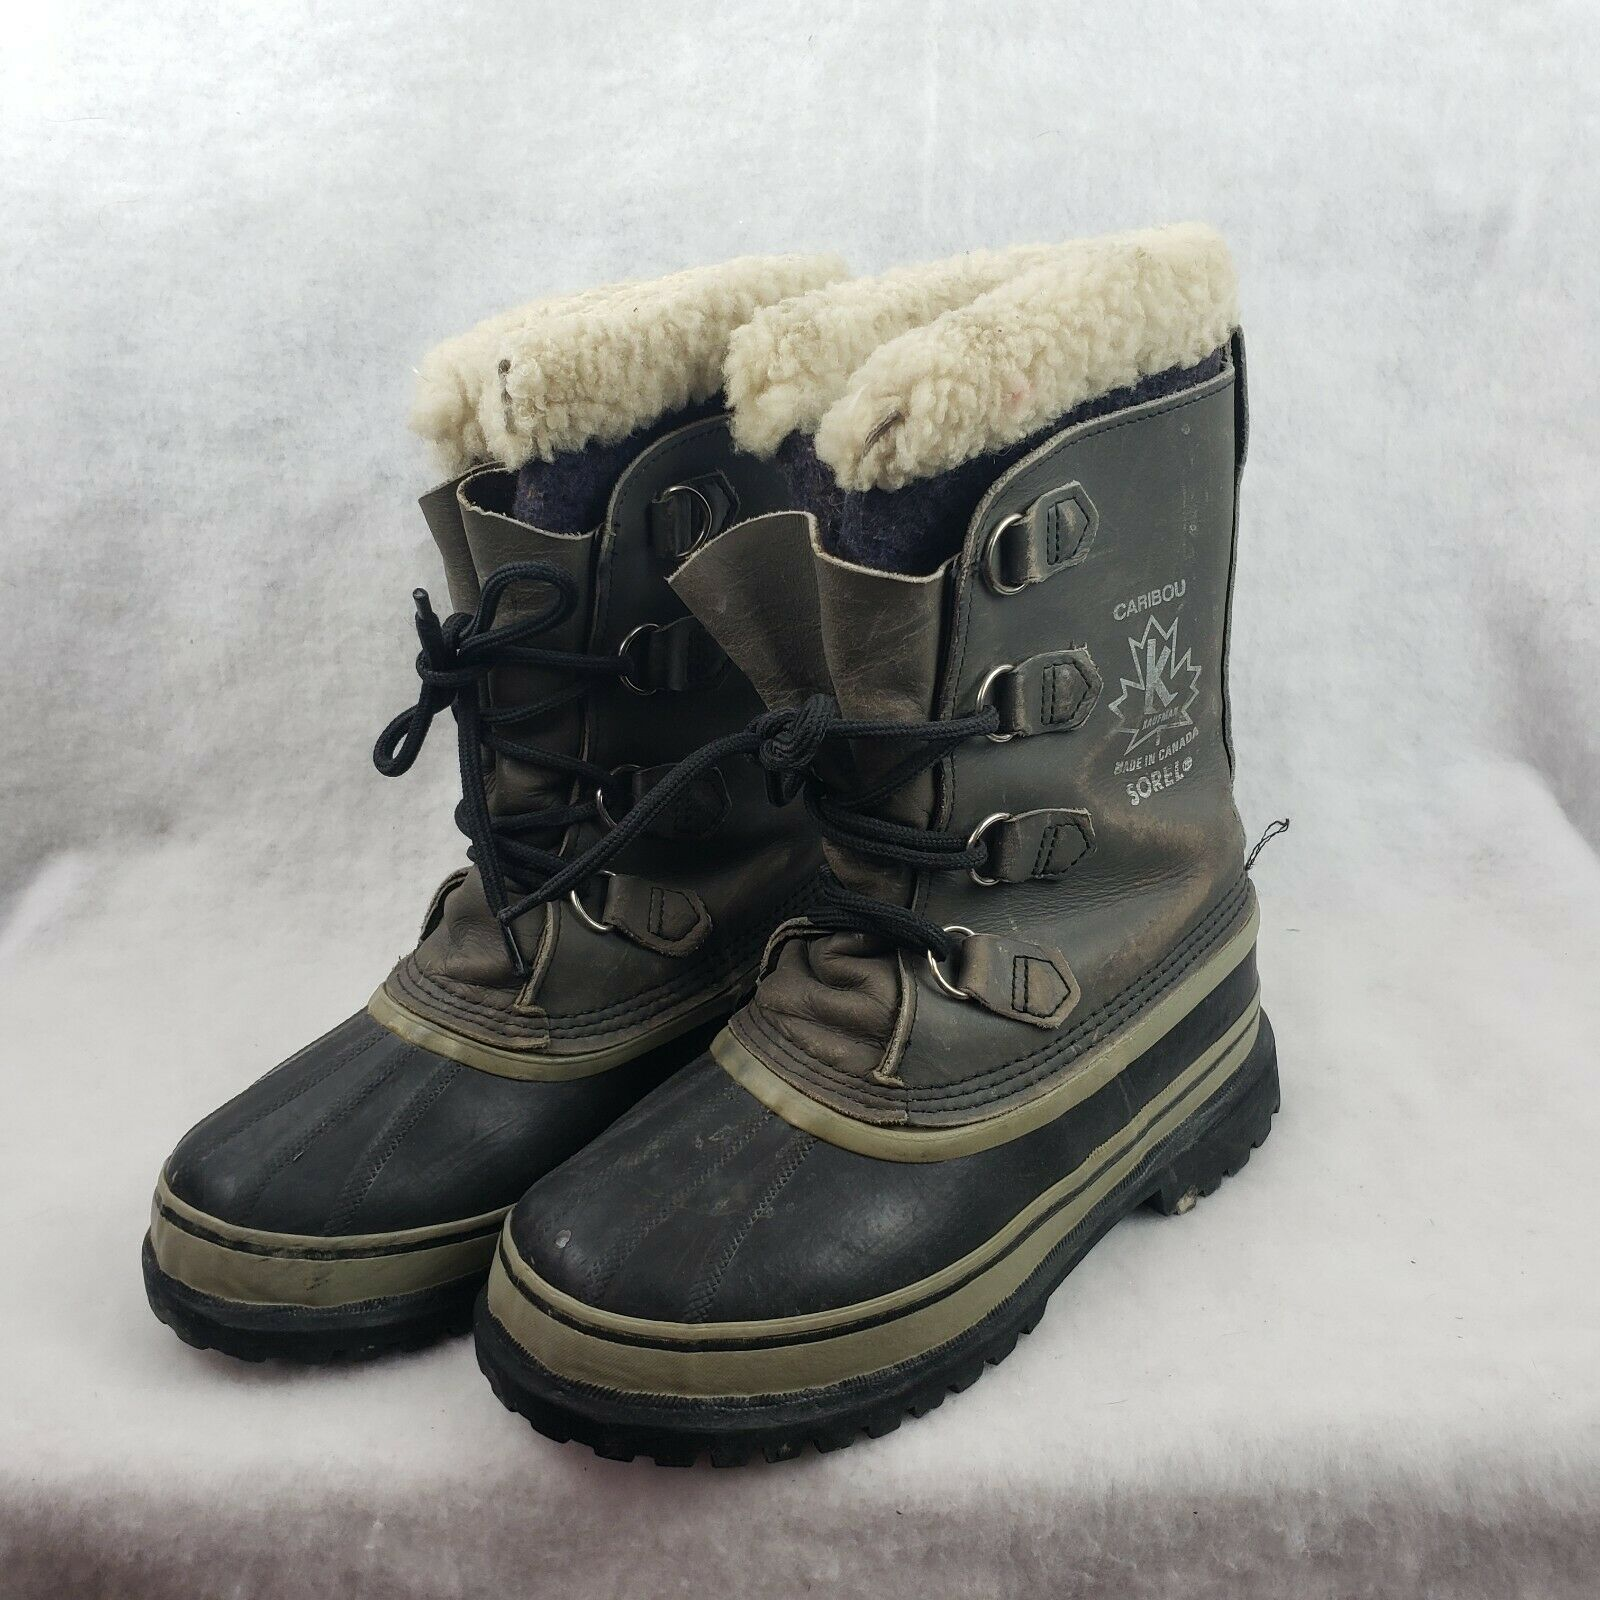 Sorel Boots Size 8 Gray CARIBOU Snow Waterproof Warm Wool Liners see description